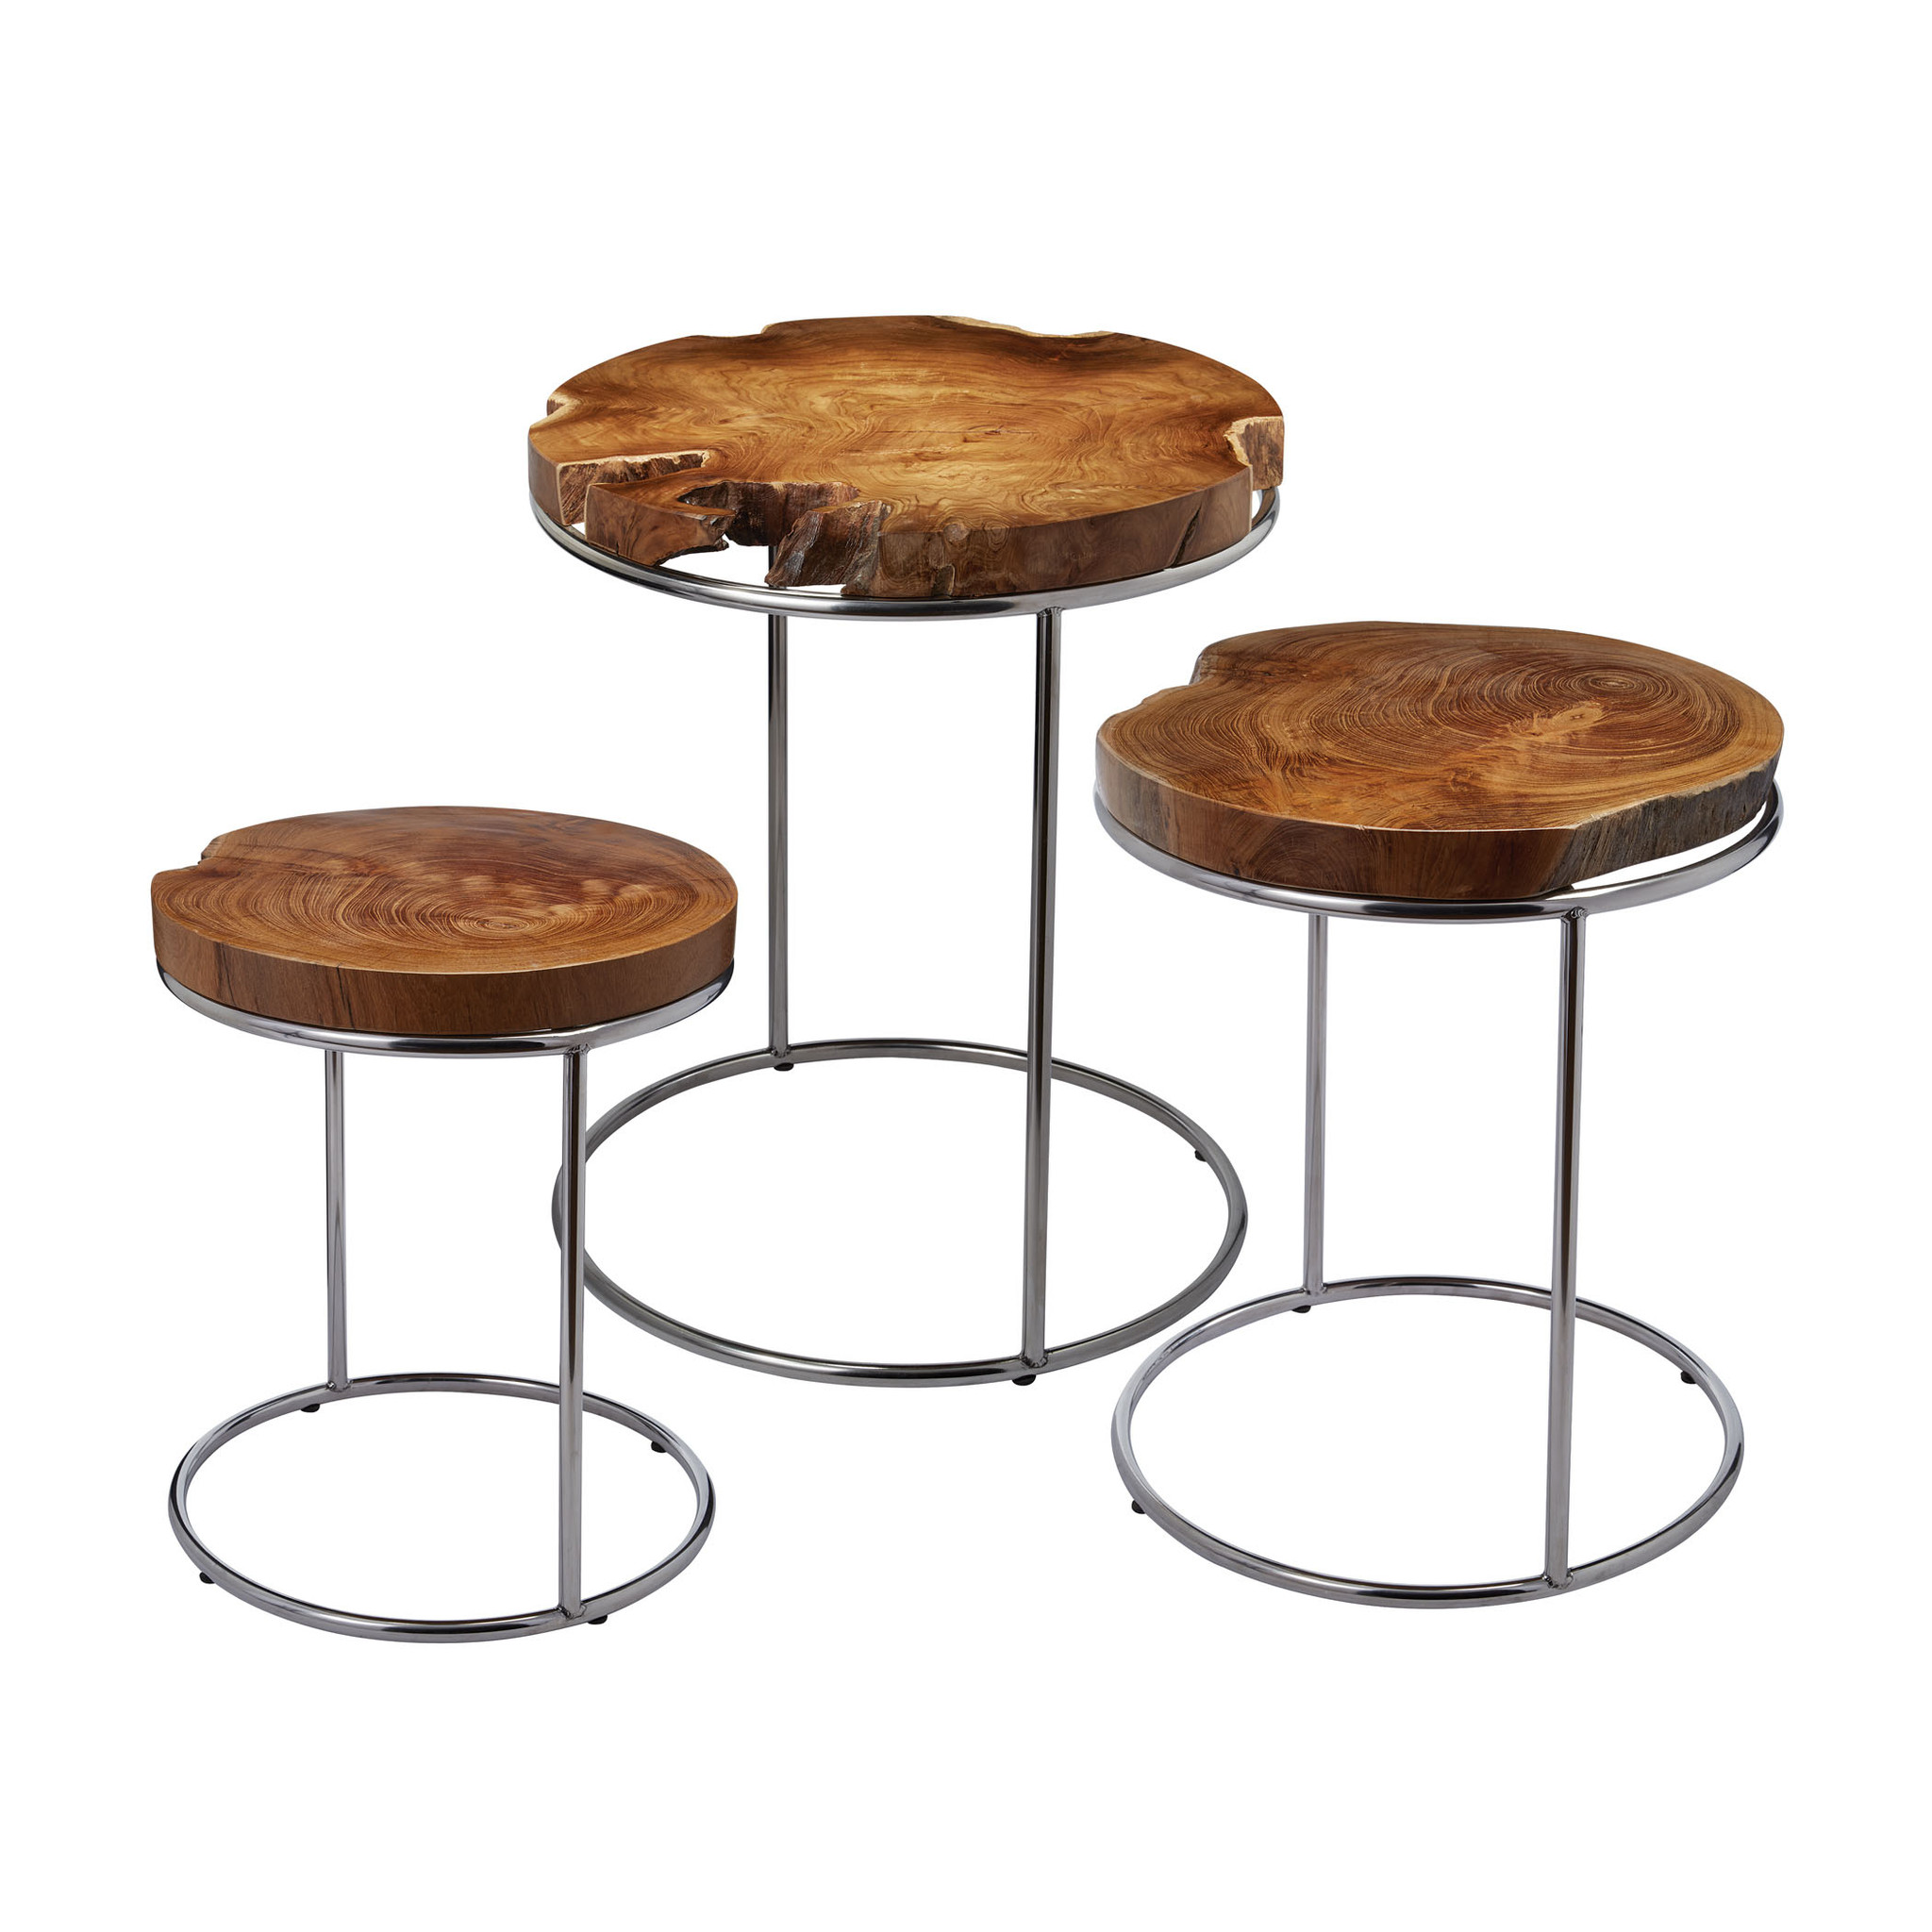 furniture elegant teak end table sets slab stacking tables set beautiful irregular shape the round live edge wood slabs metal tube bases useful side nice organic accent full size